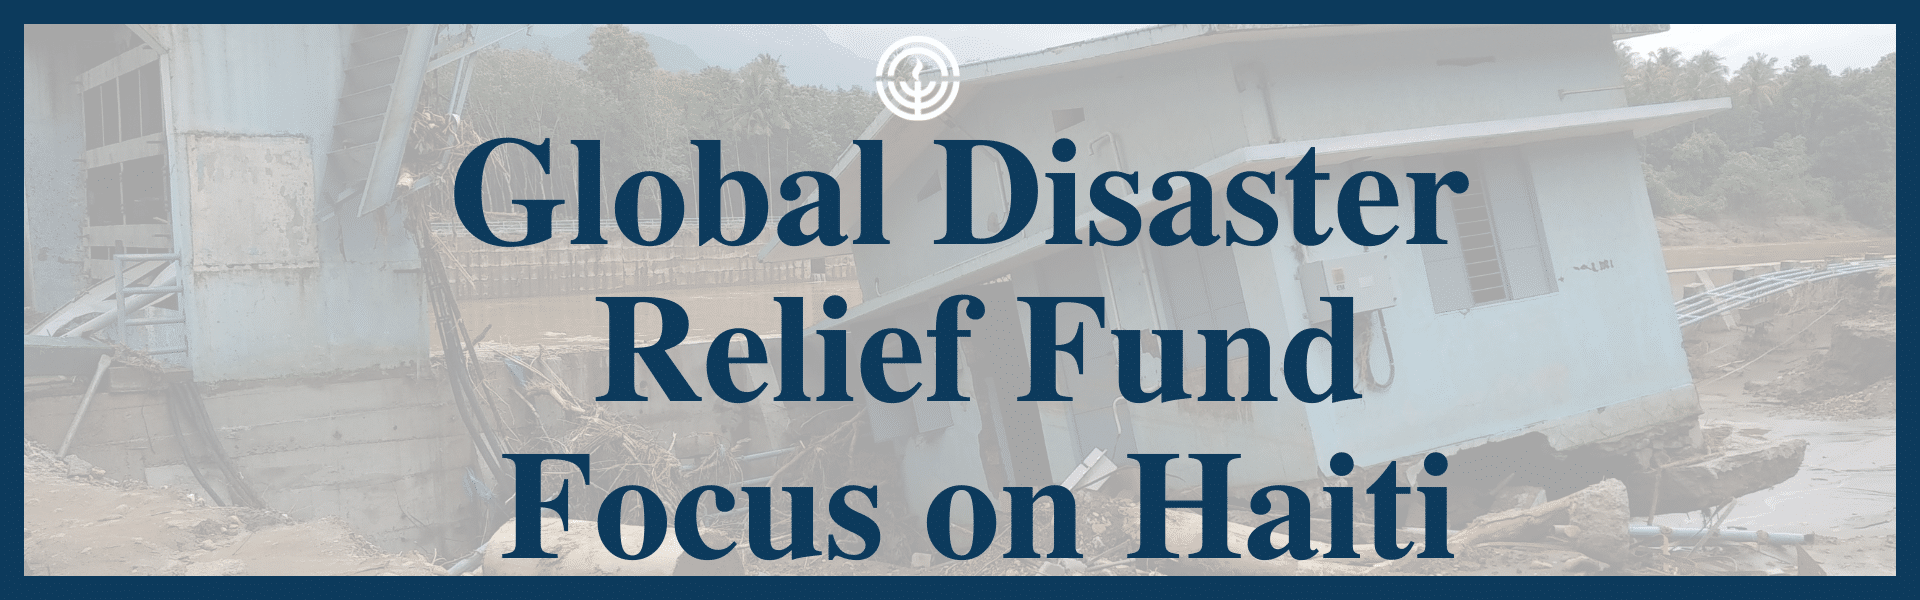 Global Disaster Relief Fund (1)